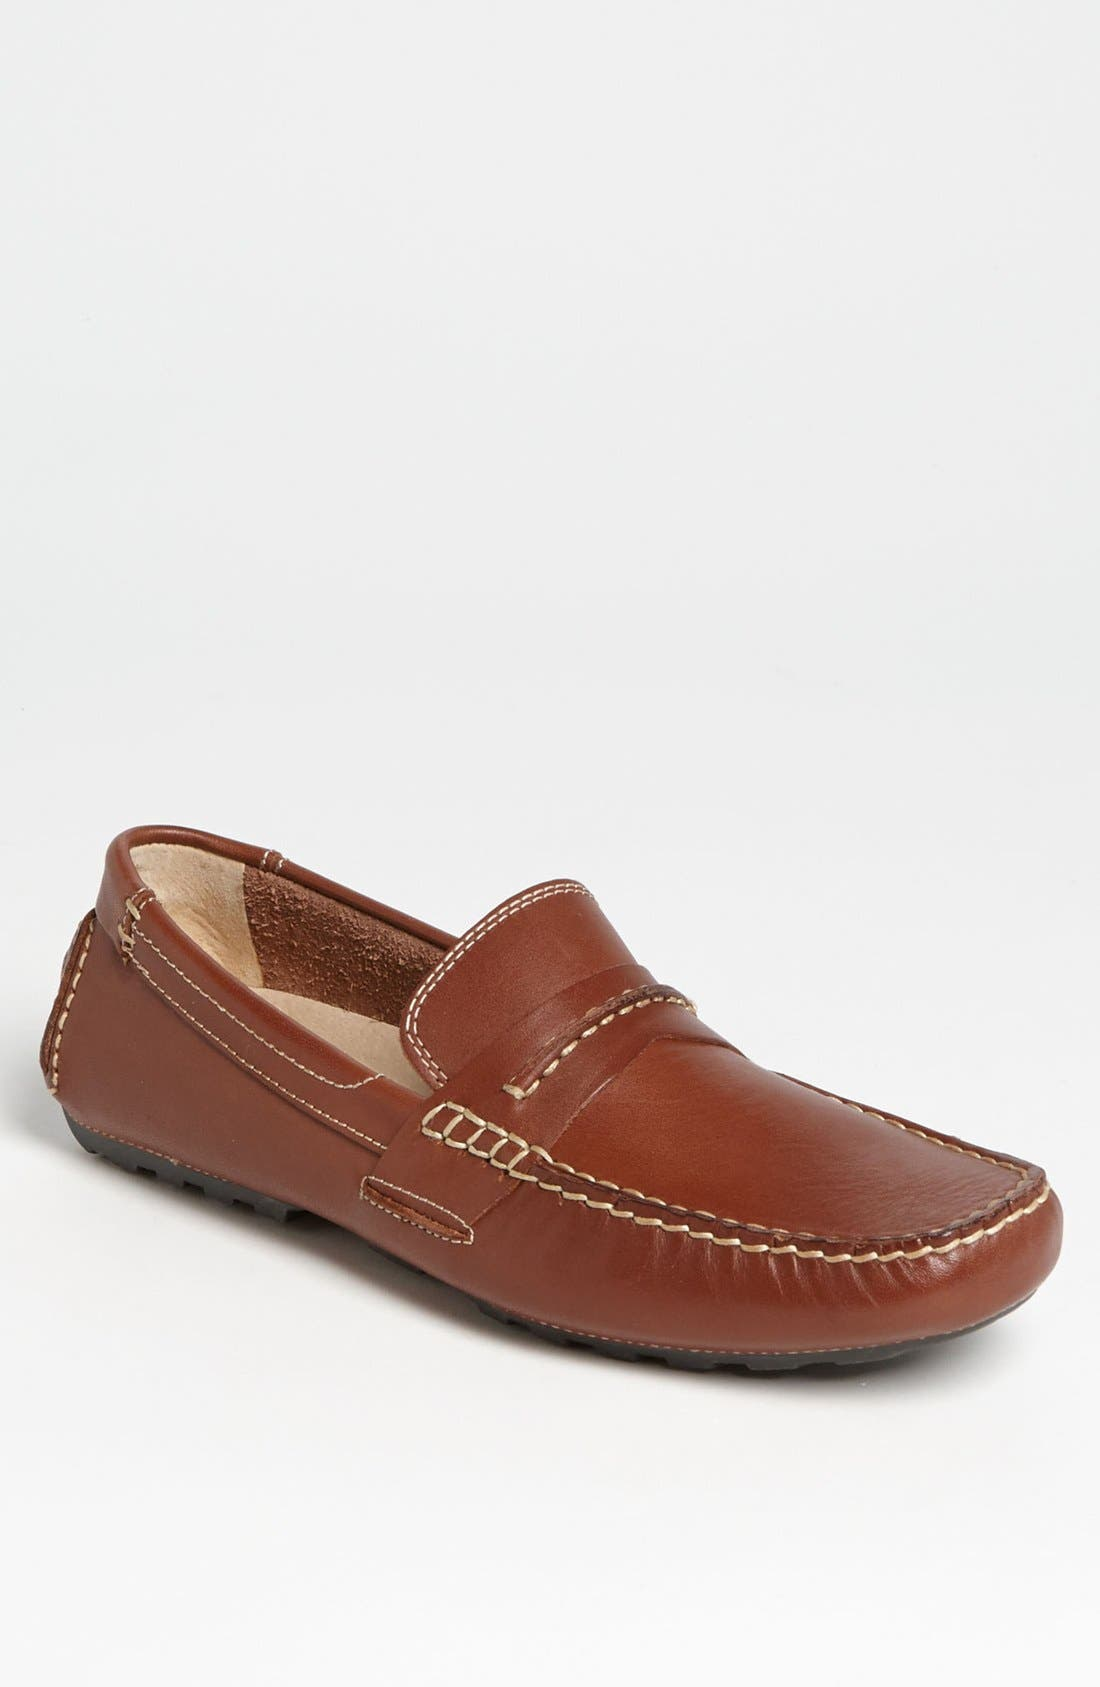 Main Image - Florsheim 'Roadster' Driving Shoe